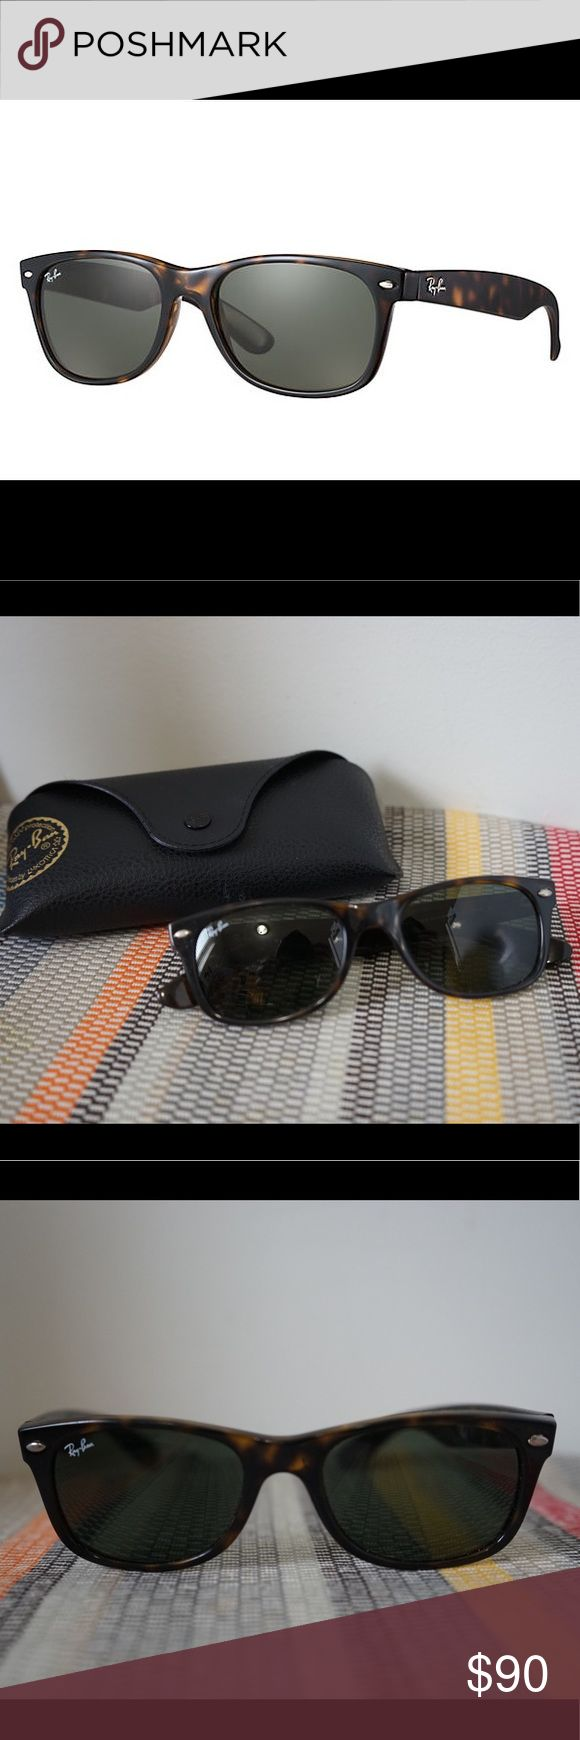 Ray-Ban New Wayfarer Tortoiseshell Sunglasses Dark lens sunglasses (non prescription) with tortoiseshell frames. Style RB2132. 100% UV protection. Some small scratches on lenses, which can also be easily replaced with prescription. Case included. Ray-Ban Accessories Sunglasses